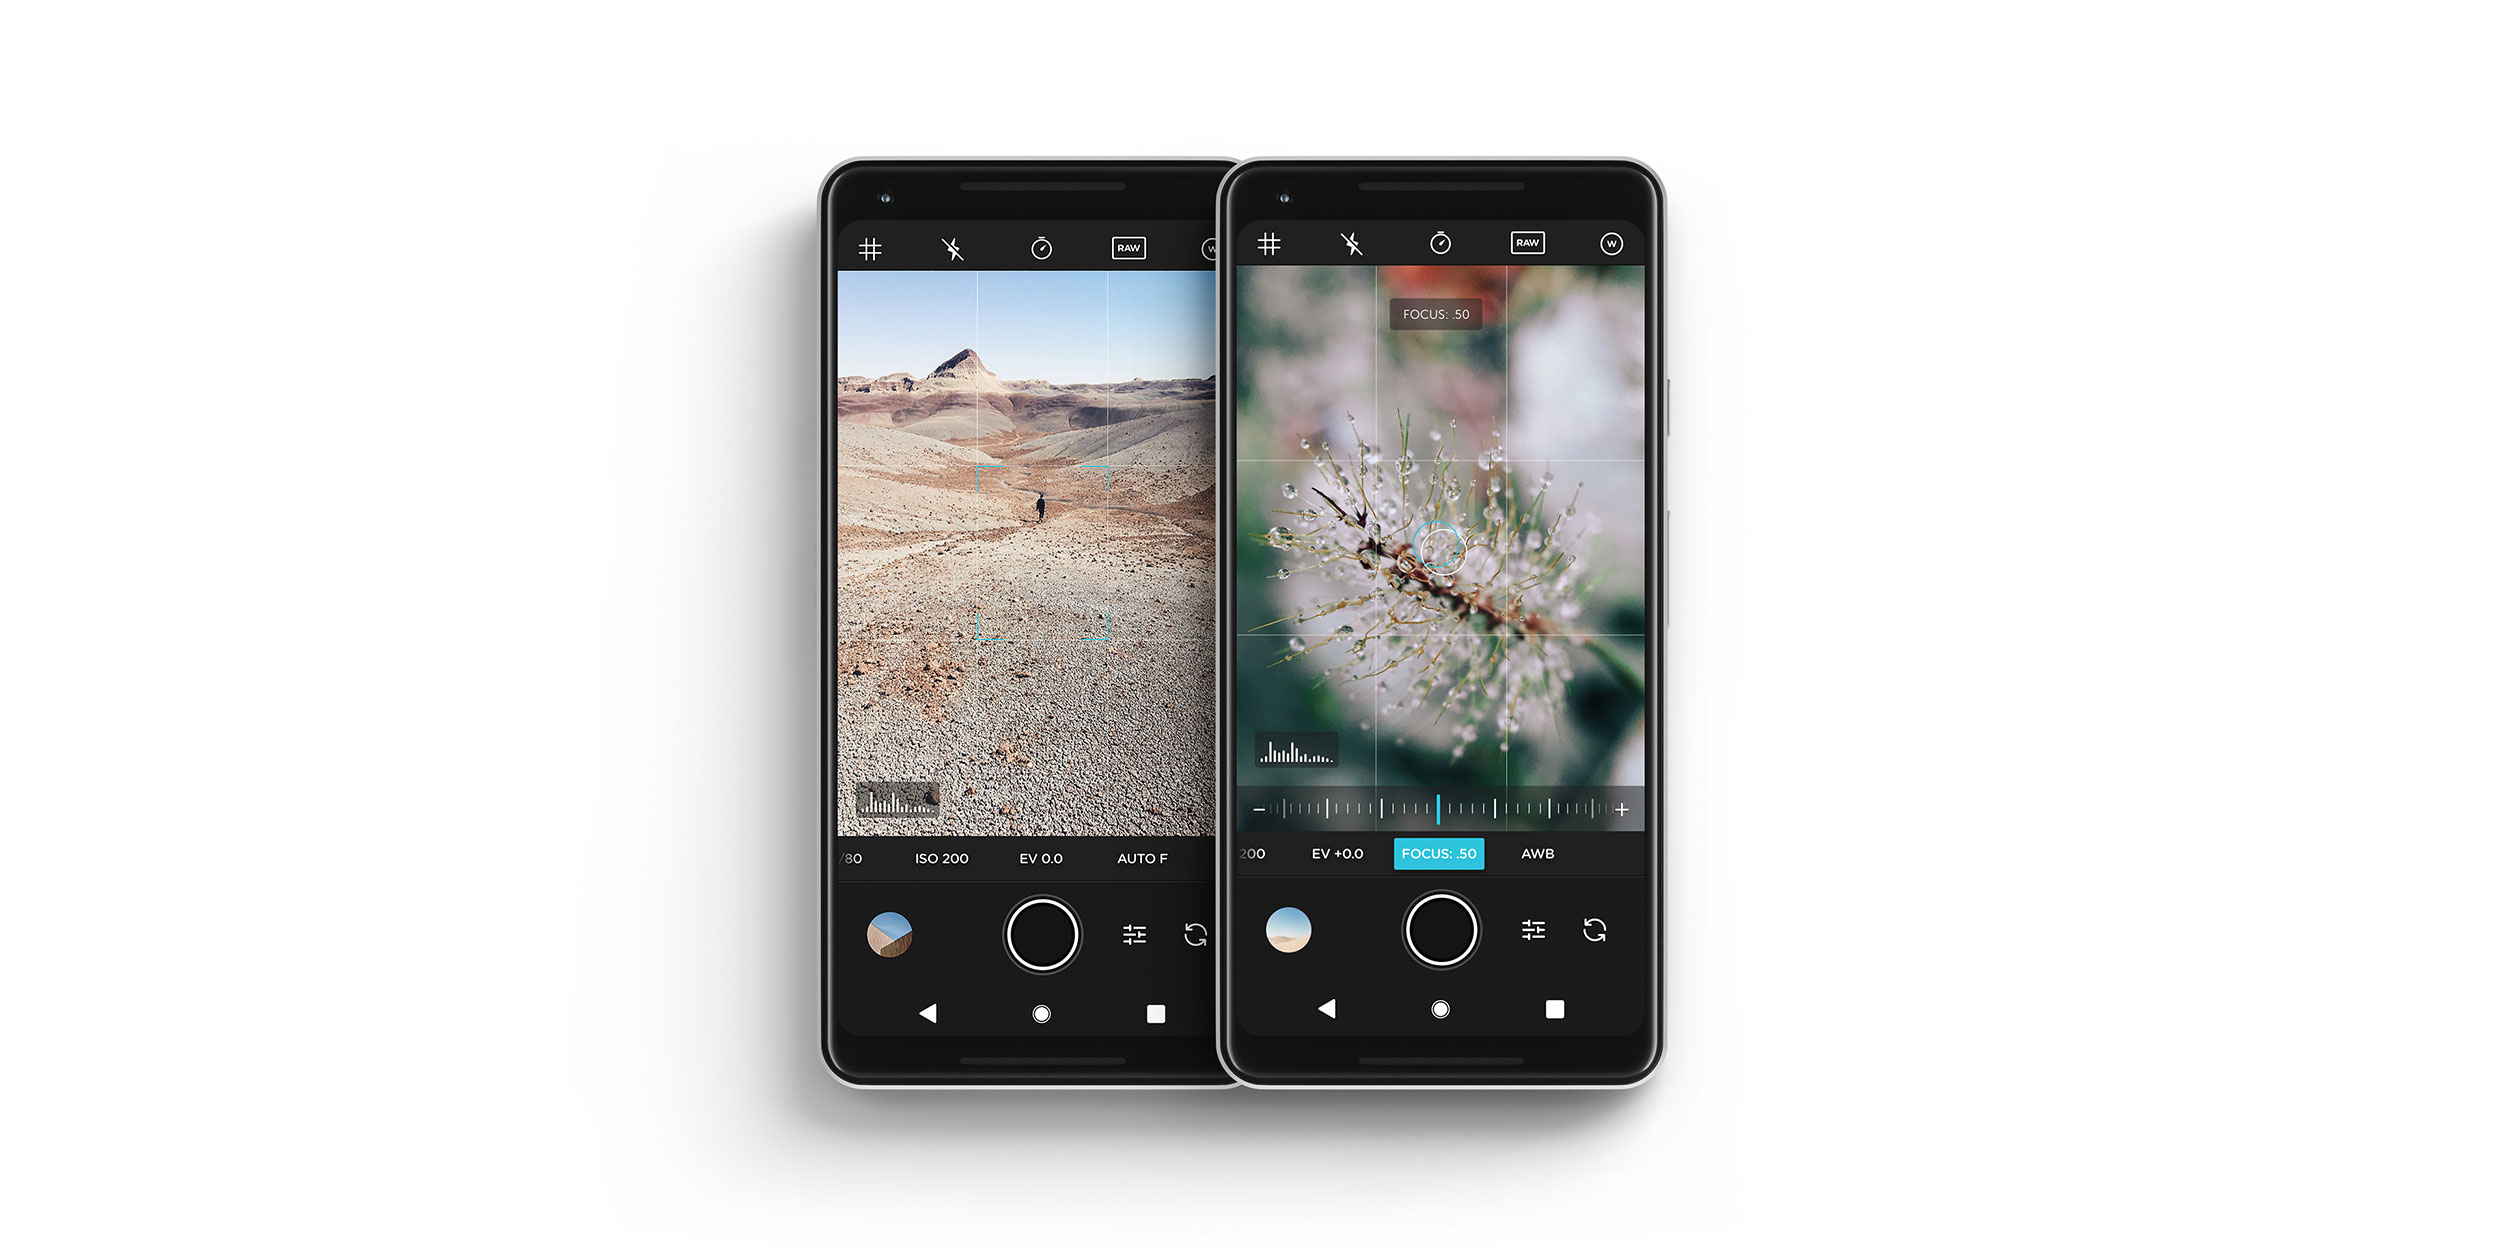 moment pro camera brings full manual camera controls to android will use pixel visual core